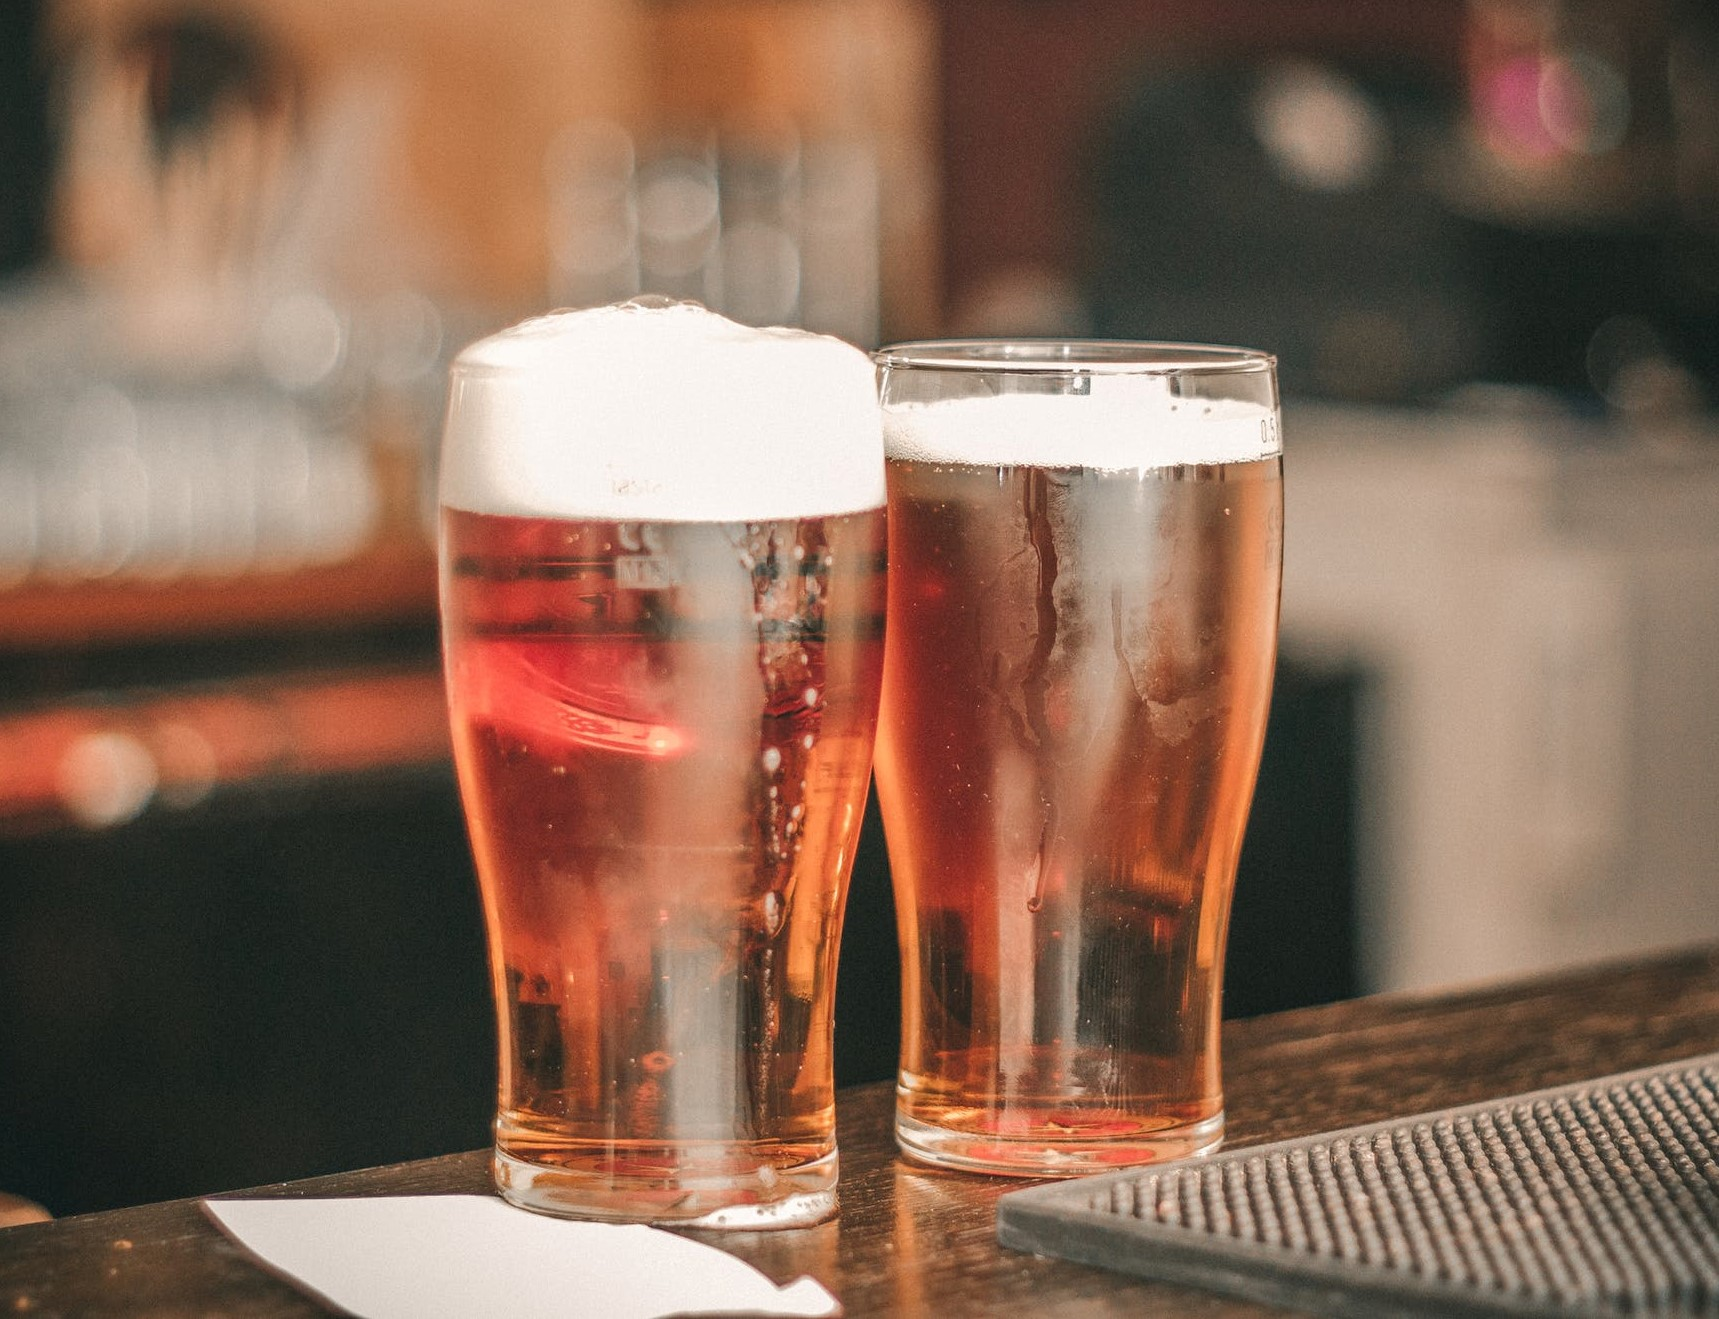 An image of two pints of beer